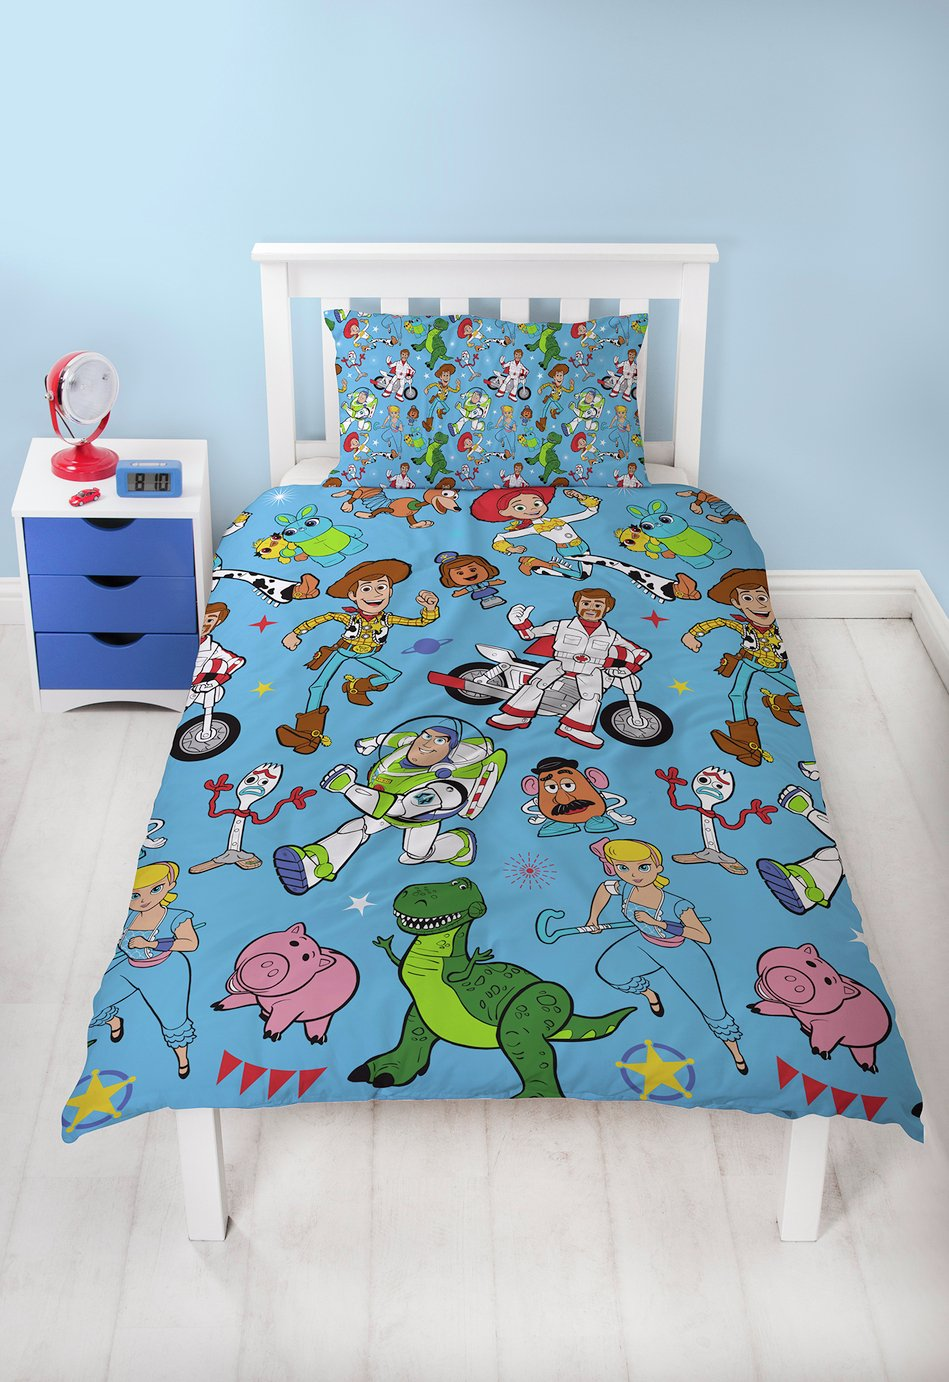 Disney Toy Story Rescue Bedding Set - Single